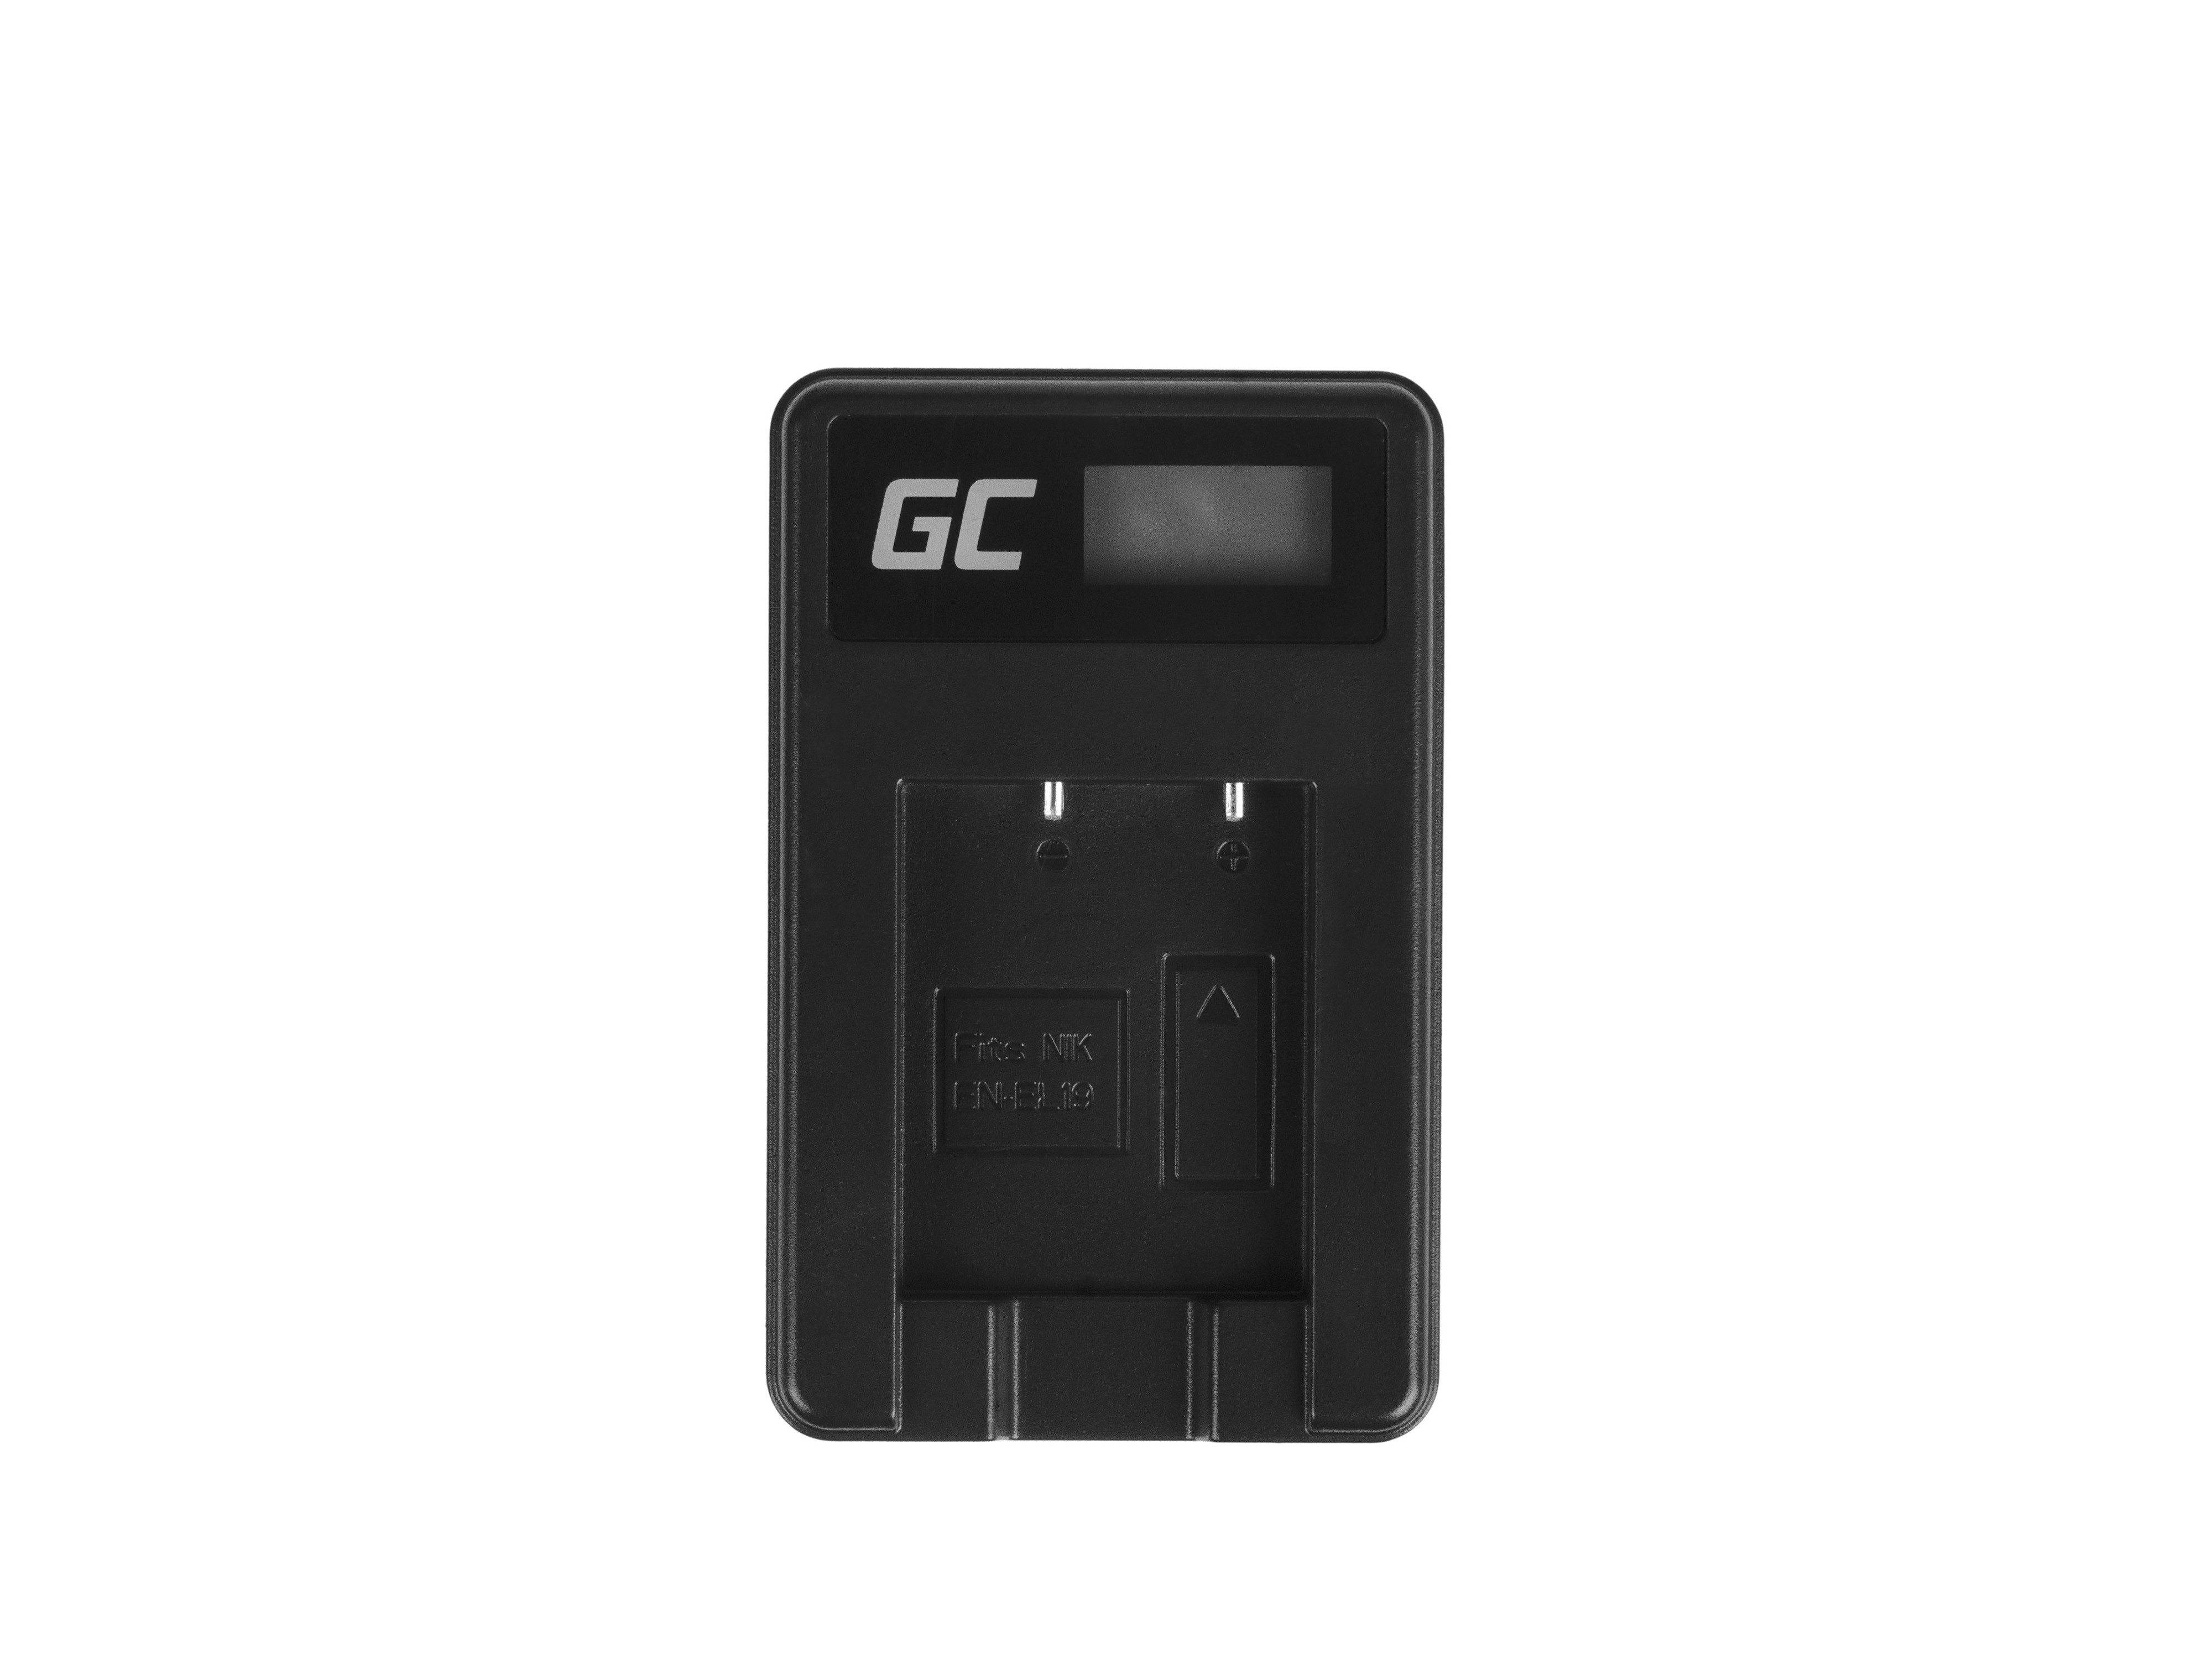 Green Cell Charger MH-66 for Nikon EN-EL19, Coolpix W100, A100, A300, S32, S33, S100, S2750, S3300, S5200, S6400, S7000